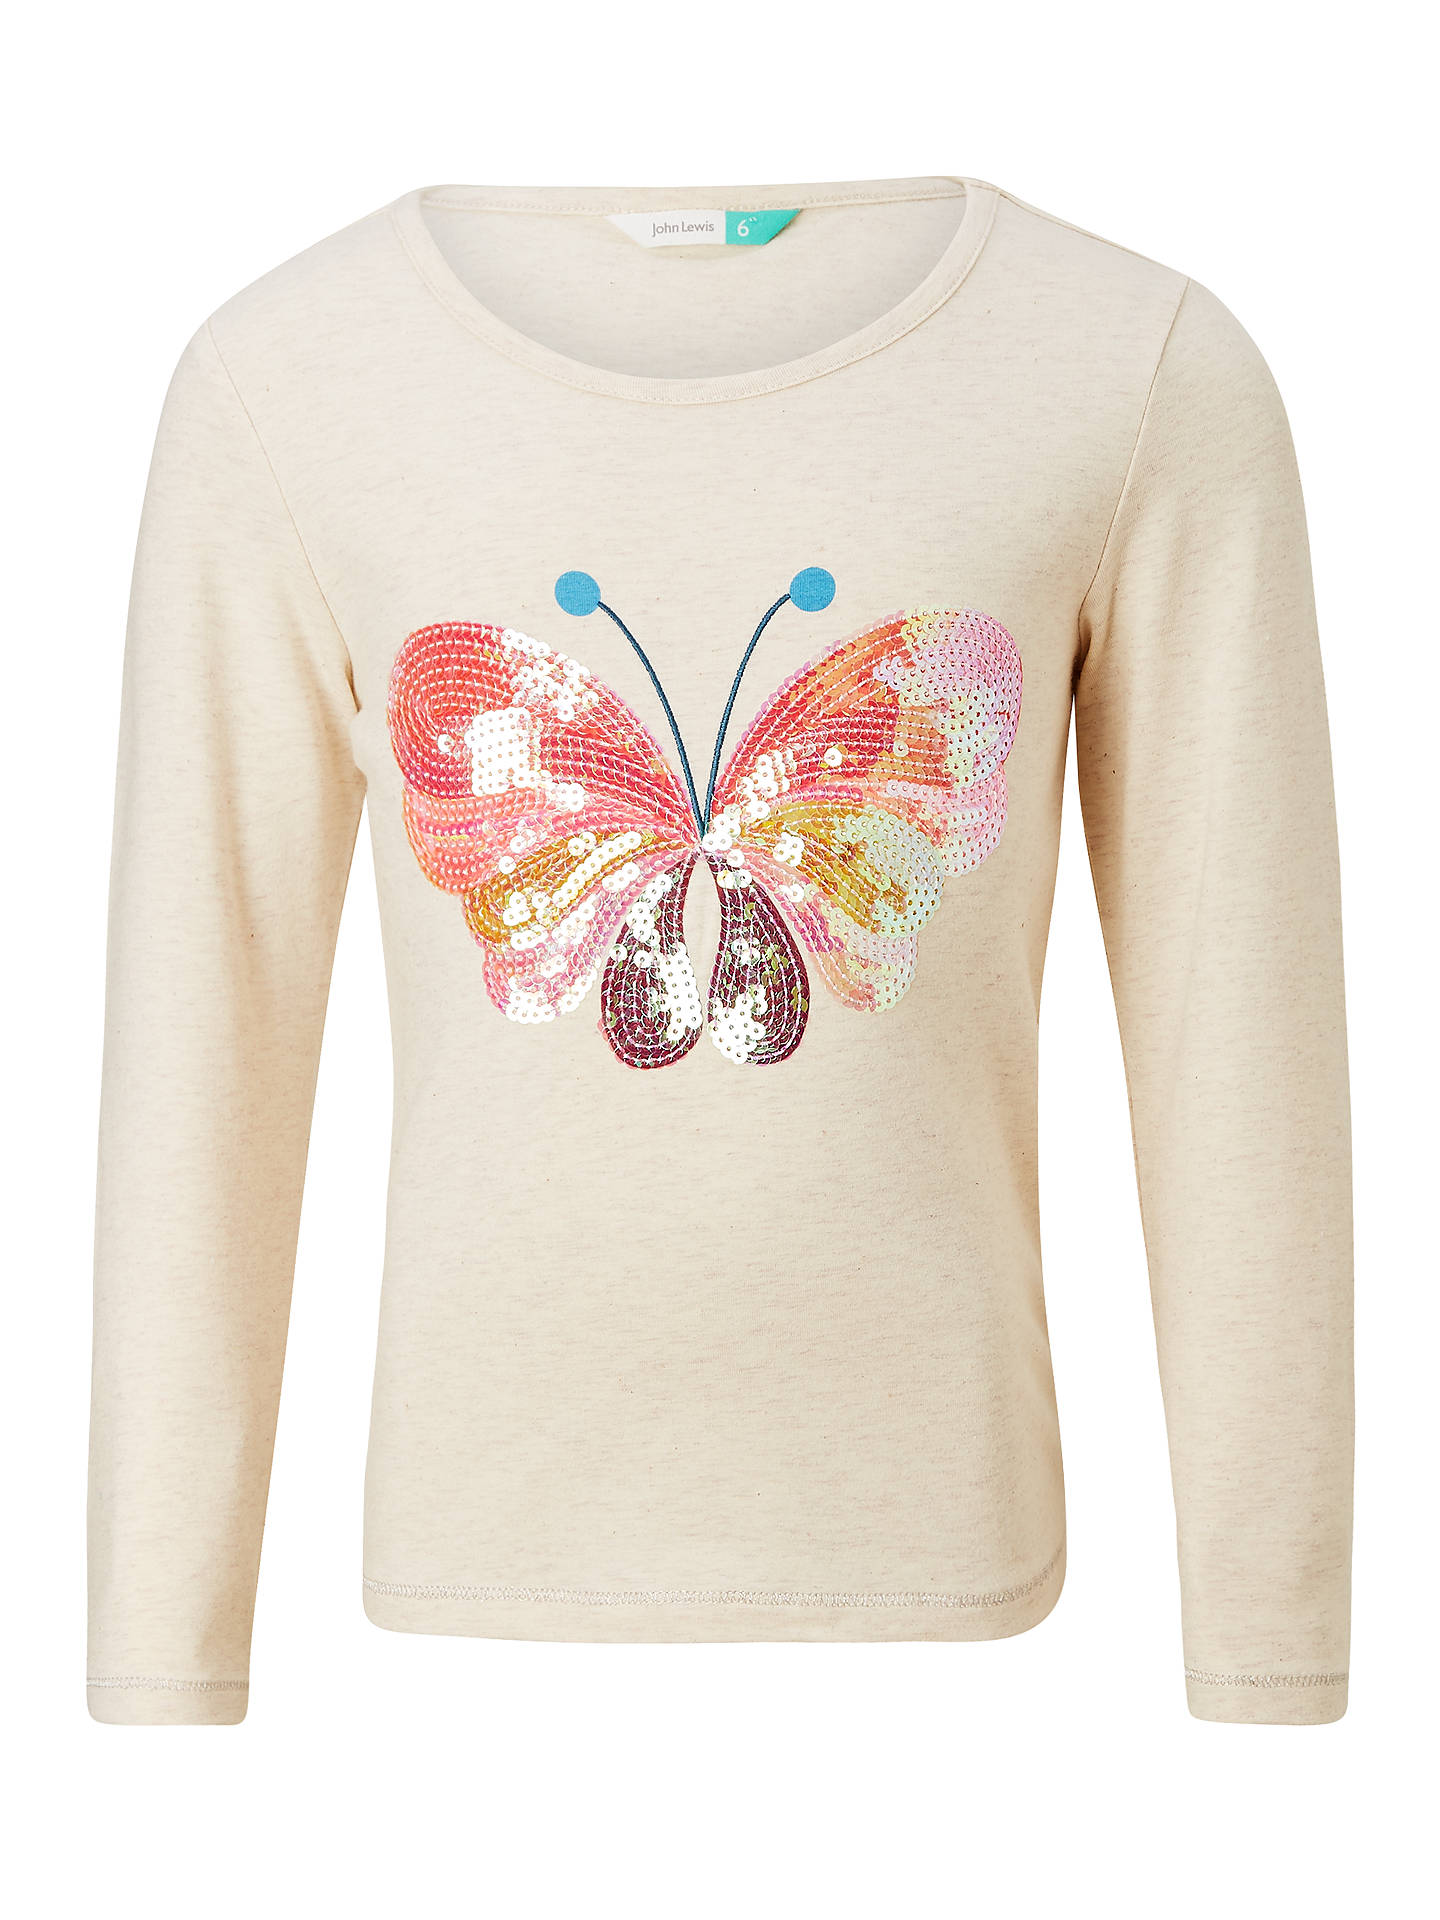 d6d59a65 Buy John Lewis Girls' Sparkly Sequin Butterfly T-Shirt, Oatmeal, 2 years ...